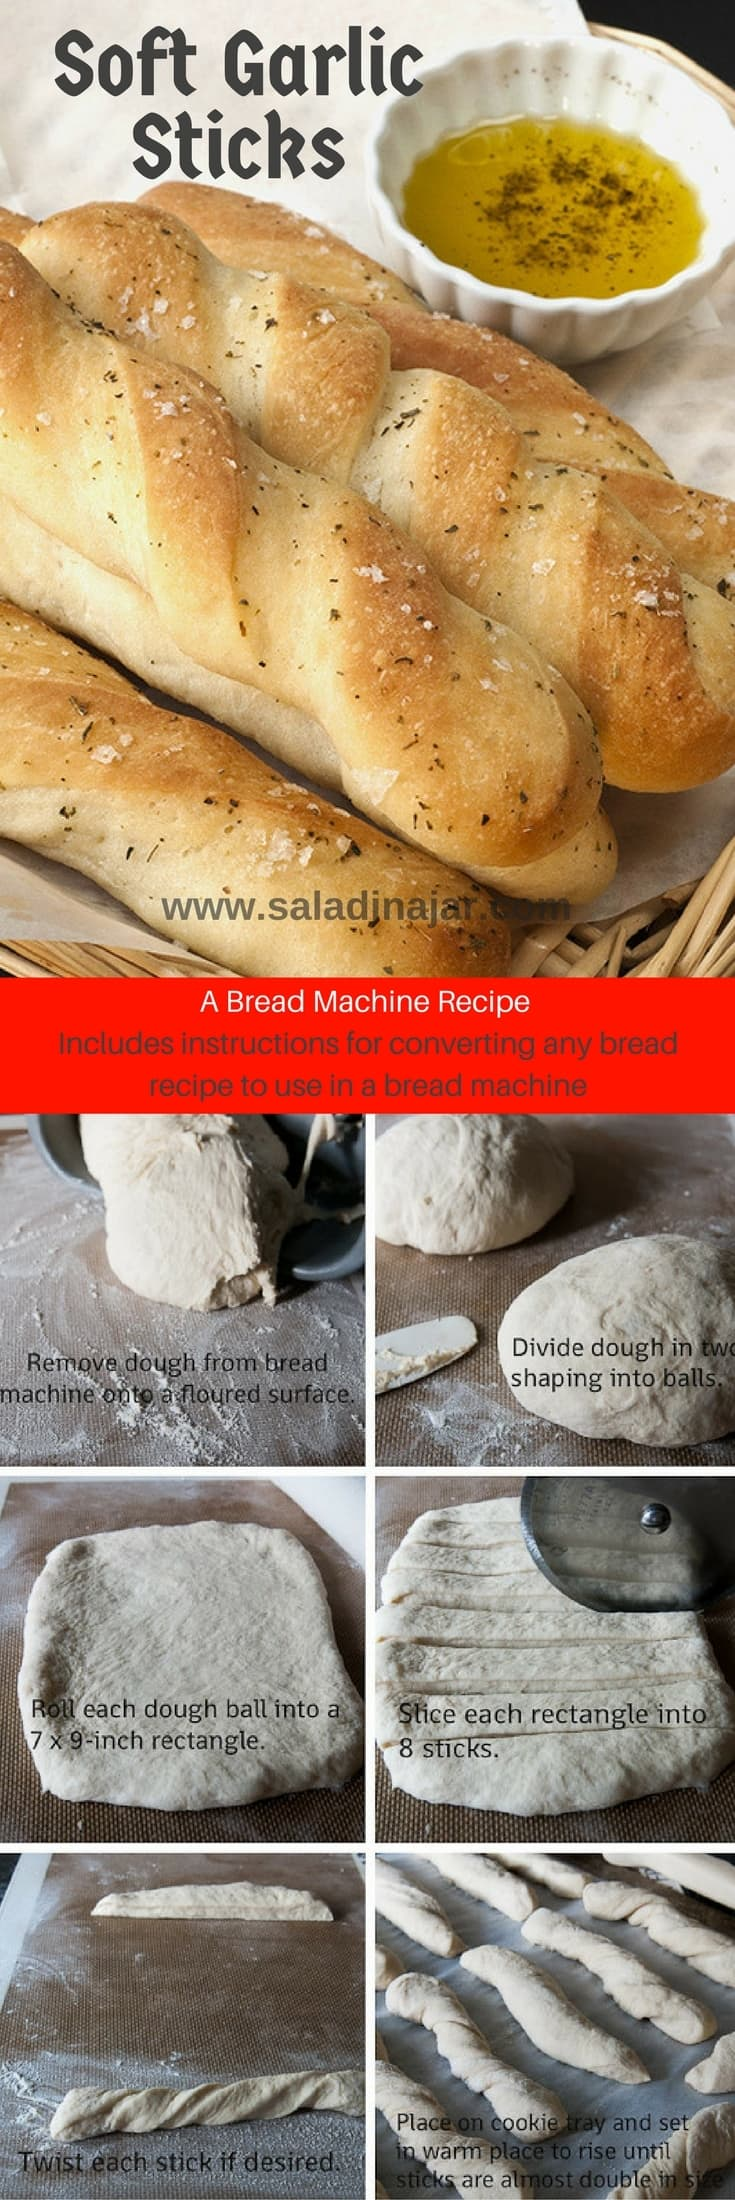 Soft-Garlic-Sticks-Made-in-a-Bread-Machine includes how to convert any bread recipe for use in bread machine